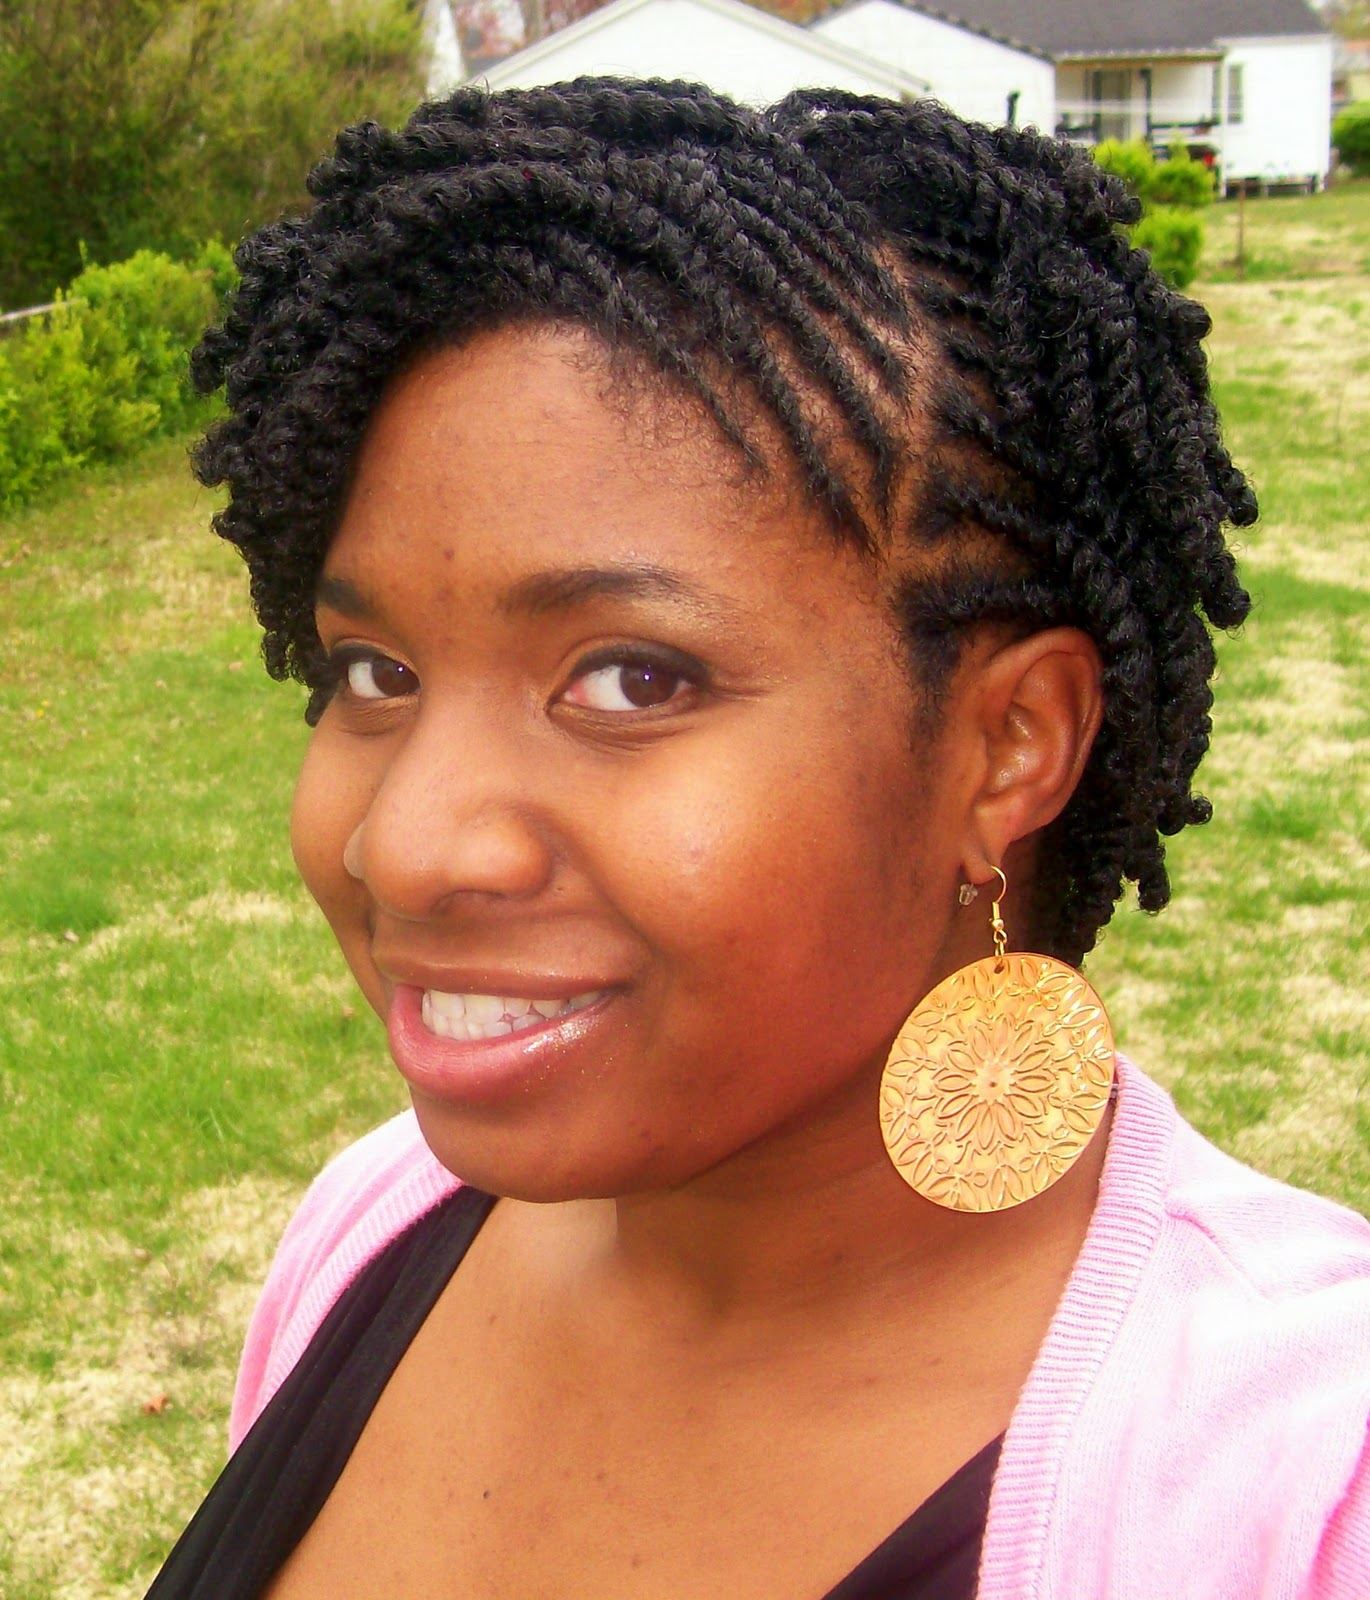 Frostoppa Ms Gg S Natural Hair Journey And Natural Hair